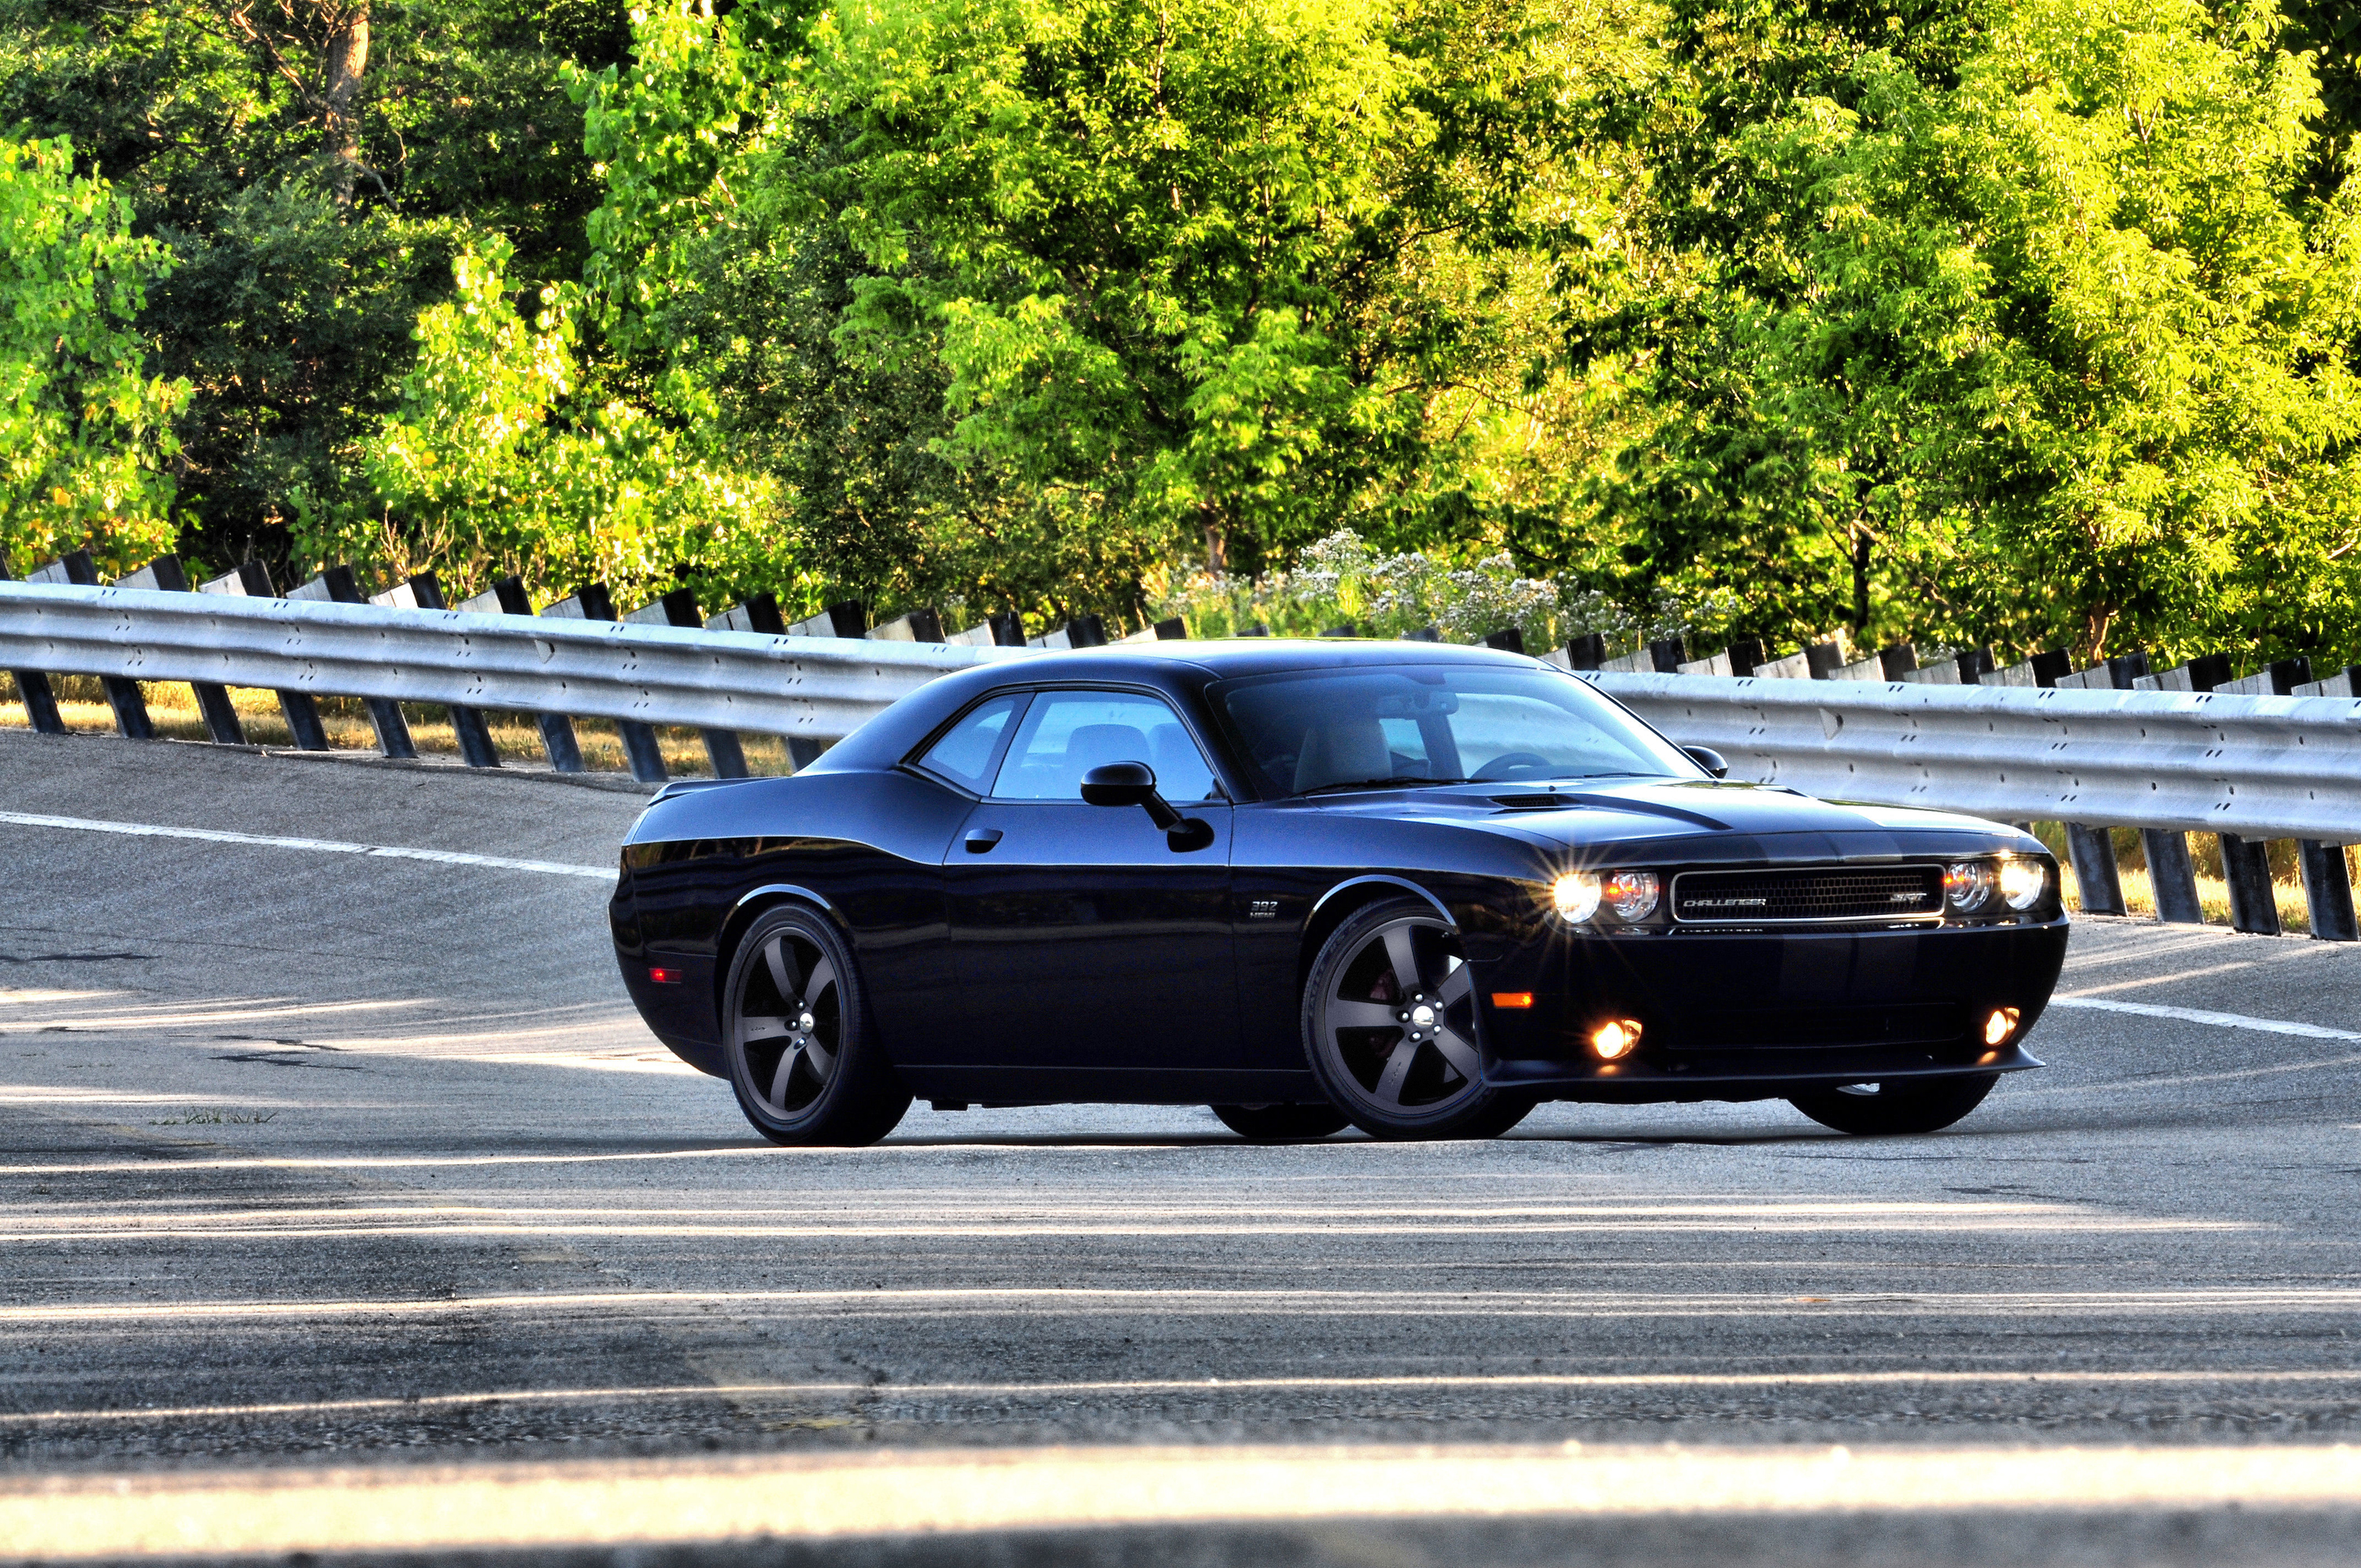 dodge its and of while camaro embraced nostalgic design remains for mustang cars expert sale all com challenger a throwback reviews few modernity the unabashedly specs in photos research hints with have